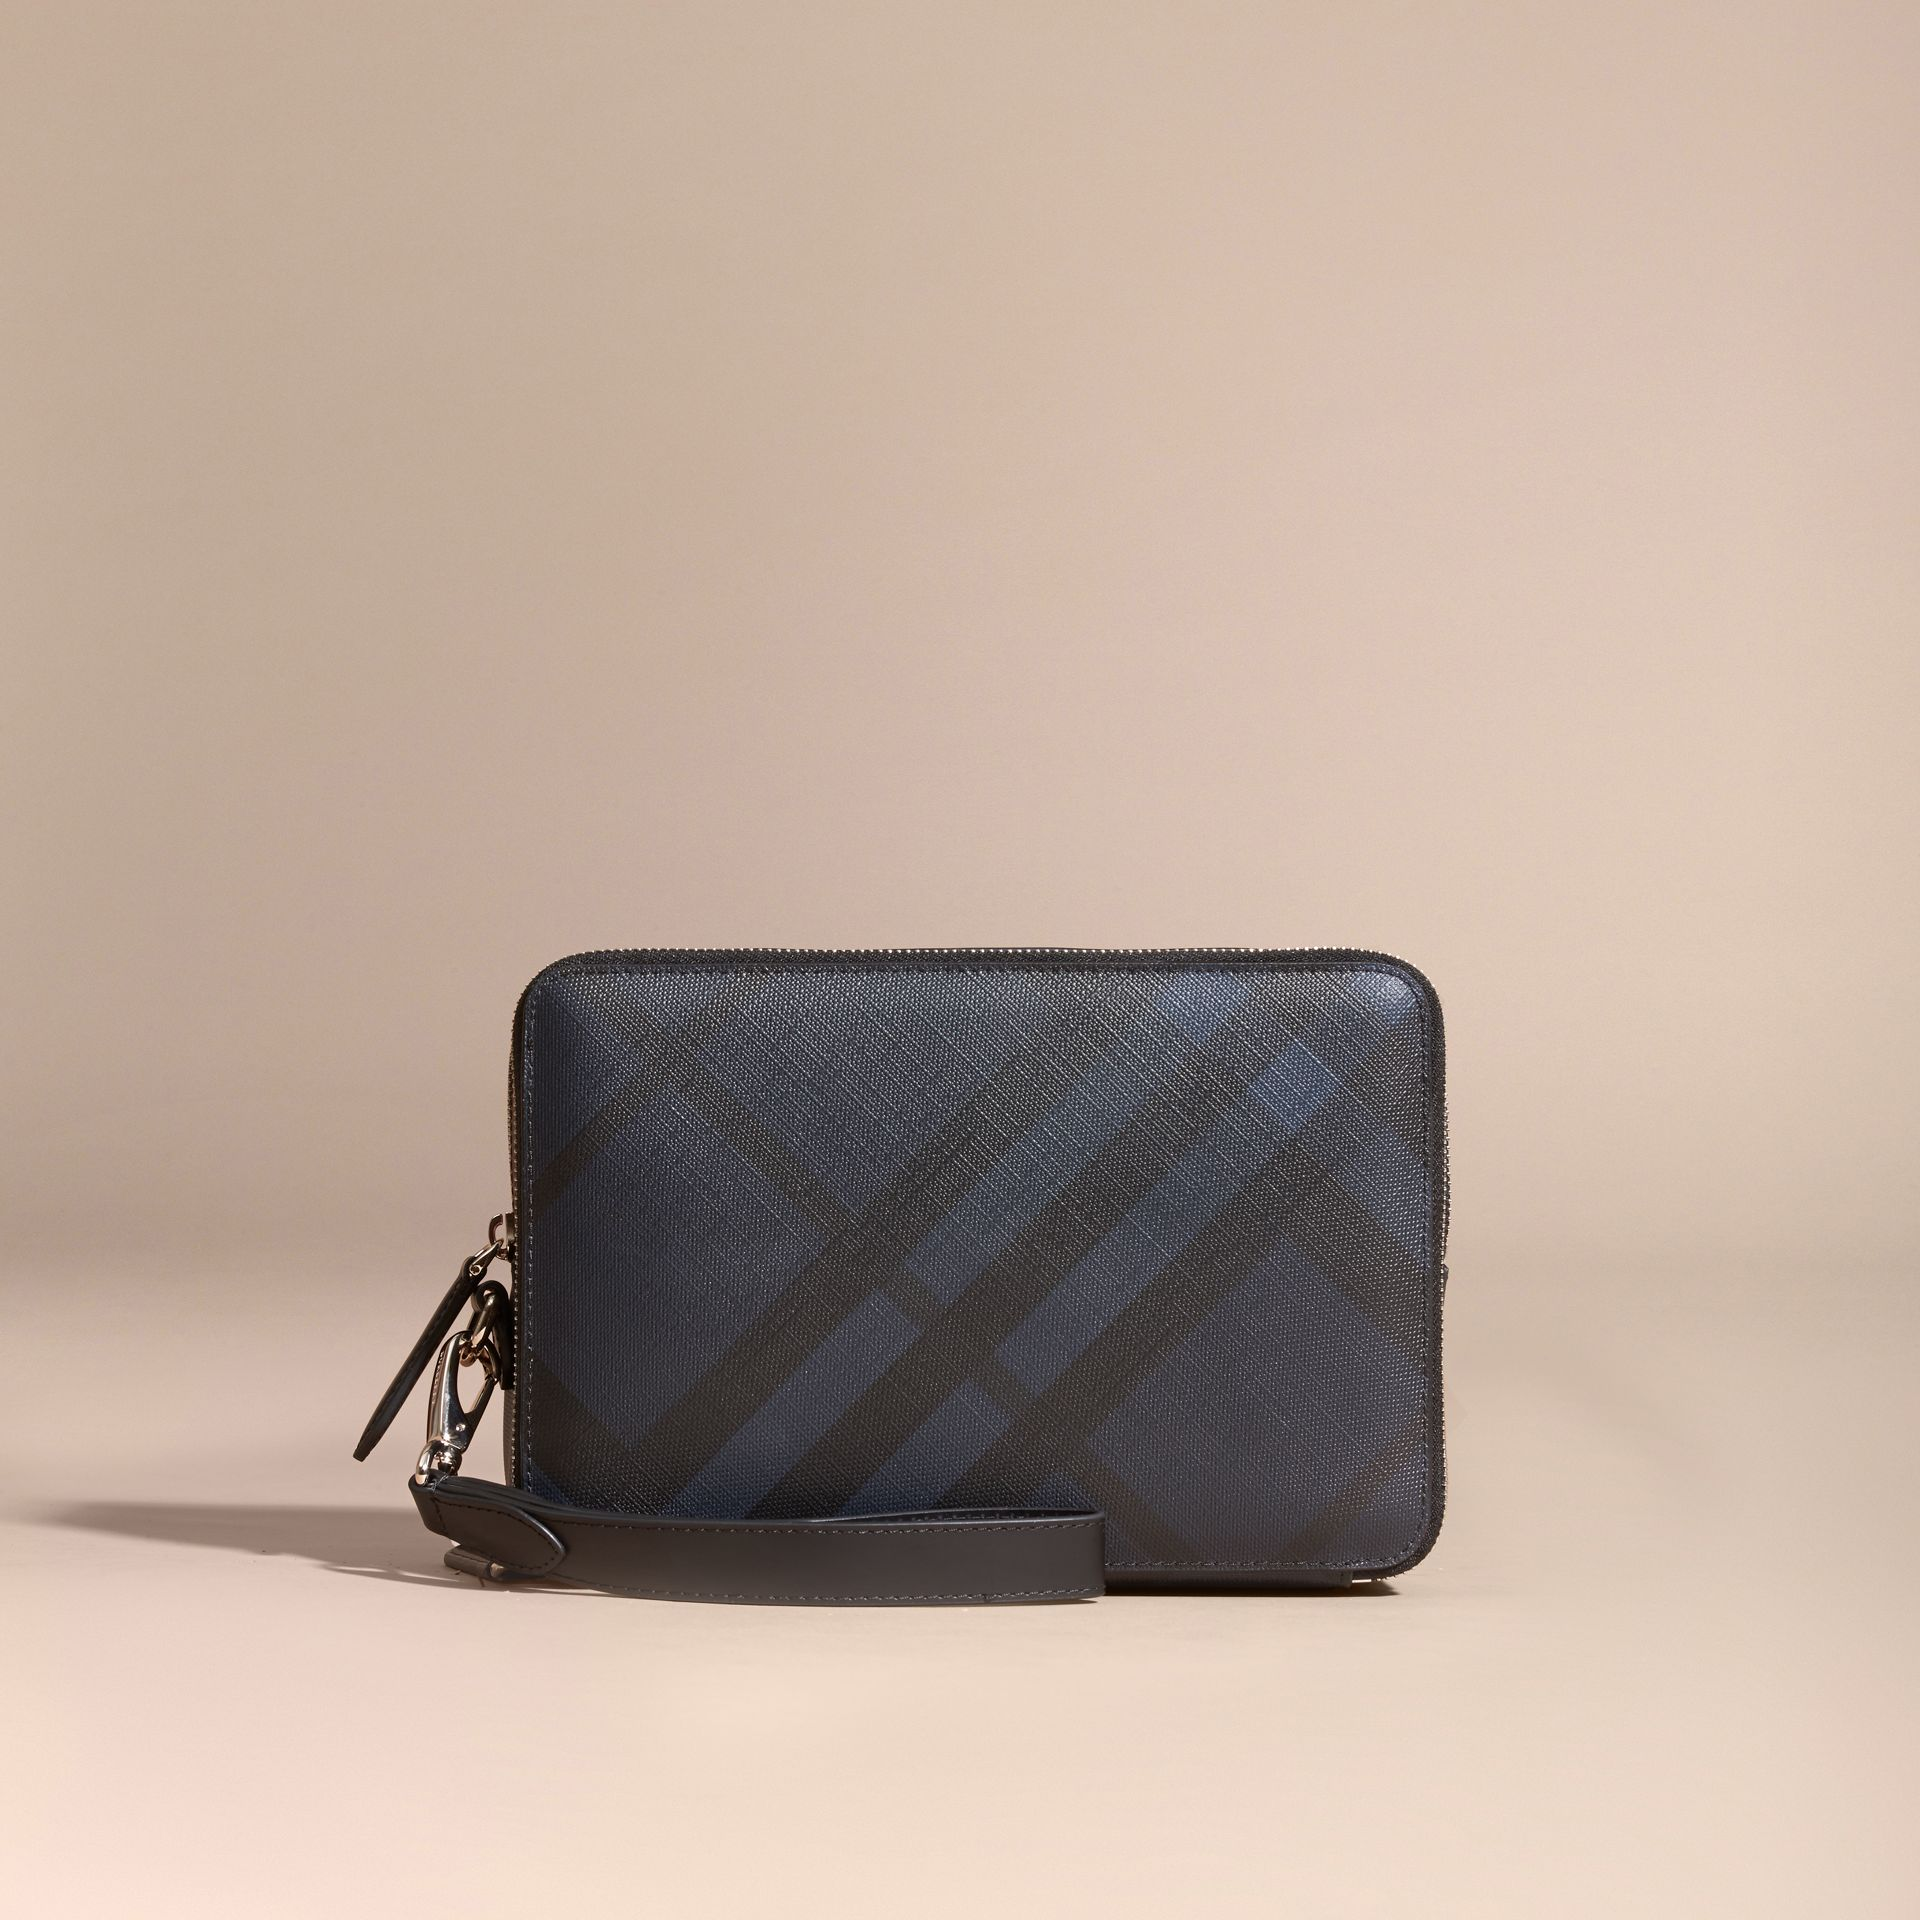 Leather-trimmed London Check Pouch in Navy/black - Men | Burberry - gallery image 6